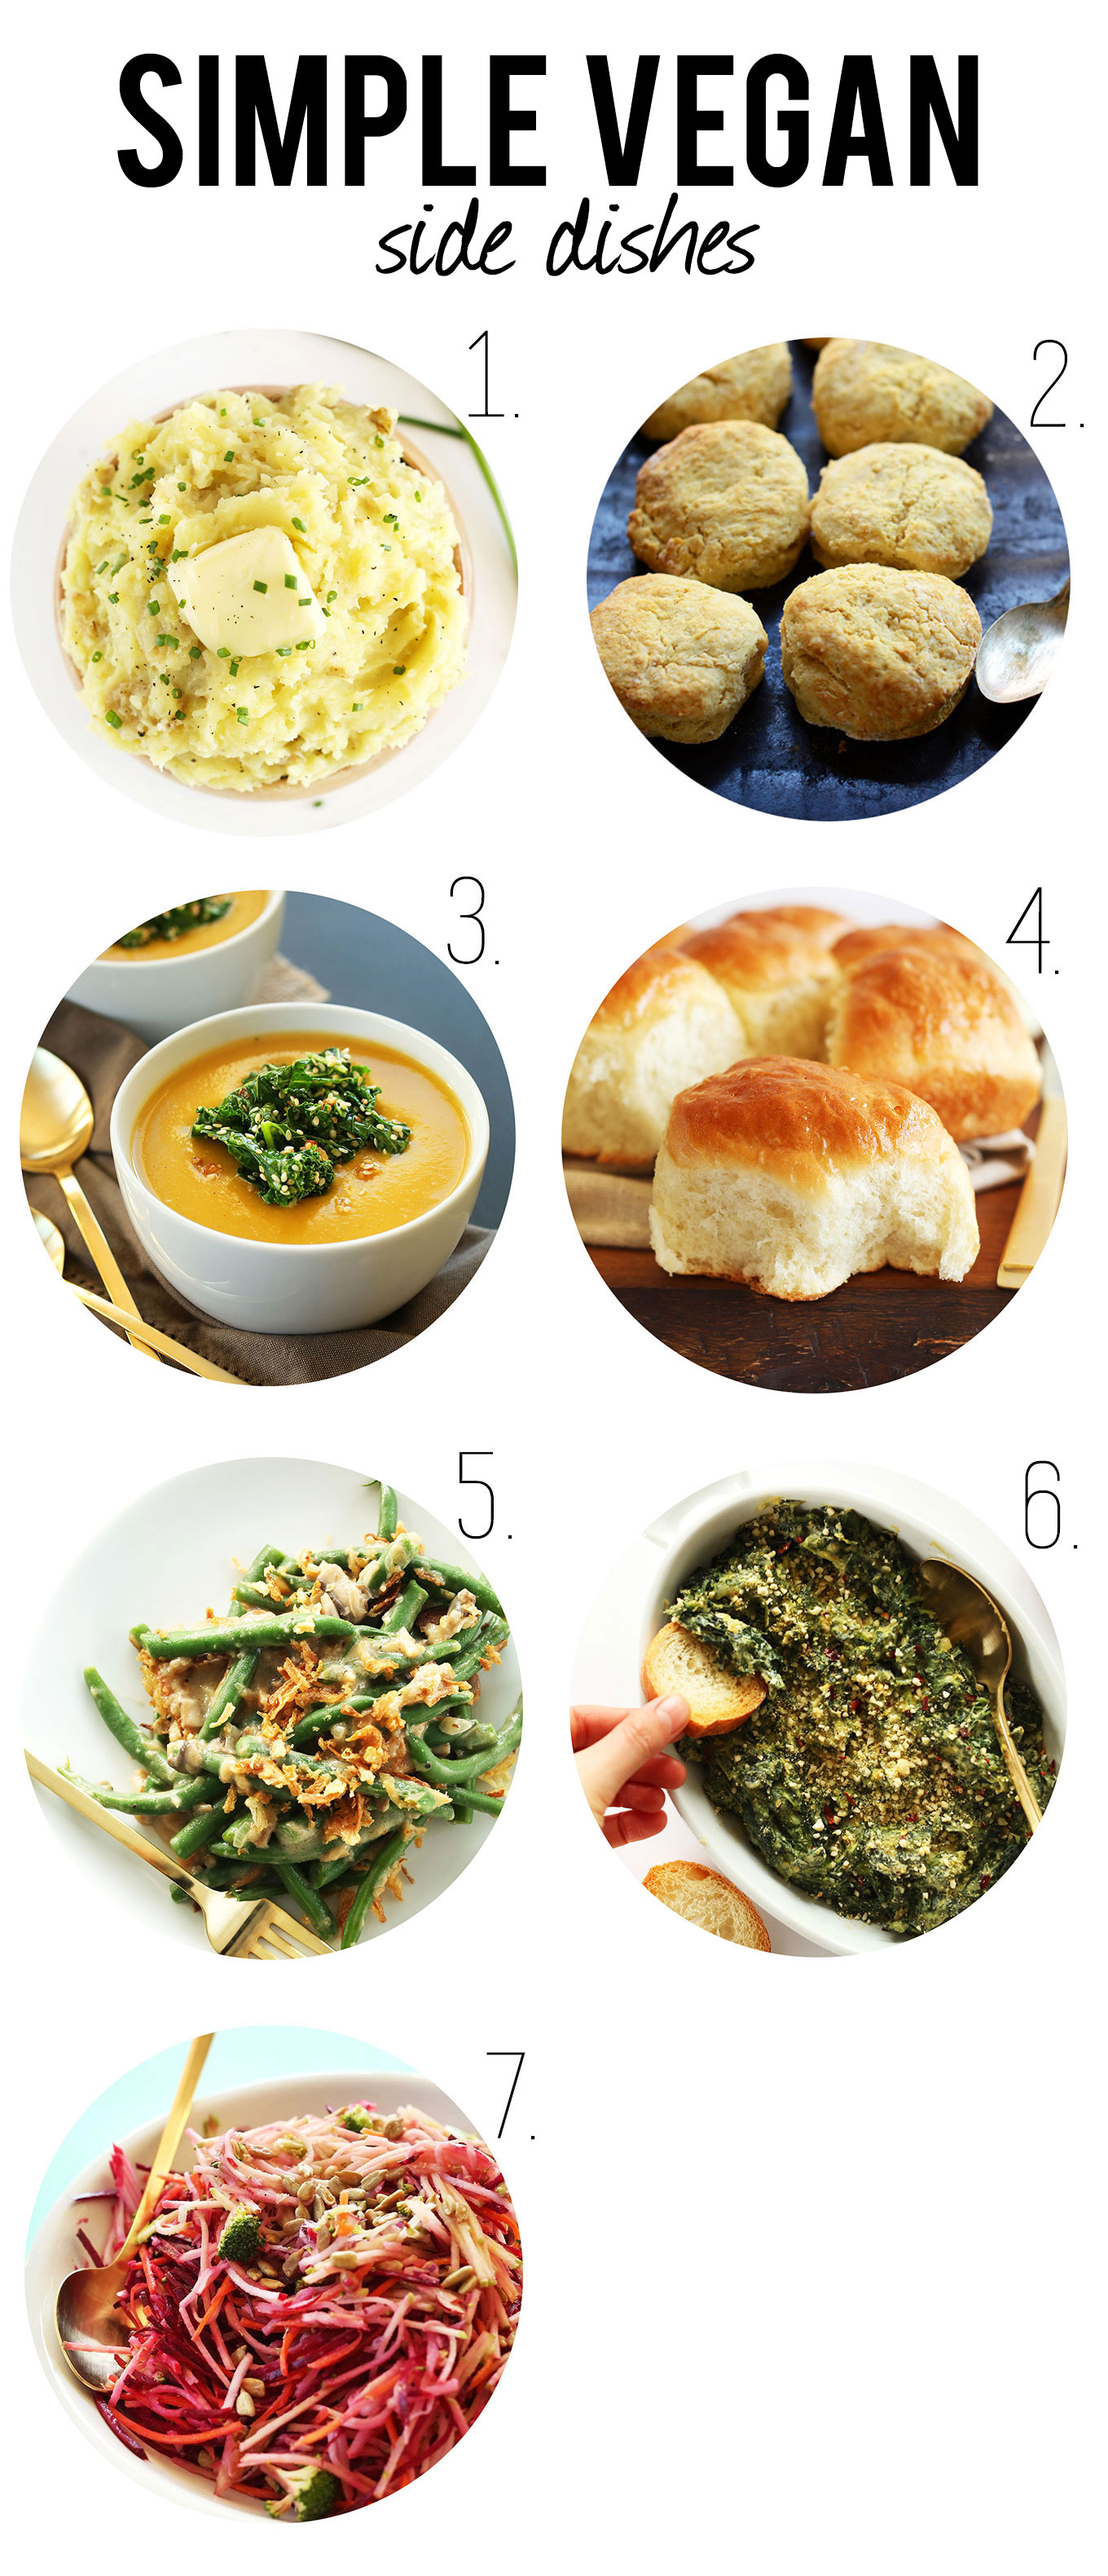 Photos of 7 simple vegan side dishes